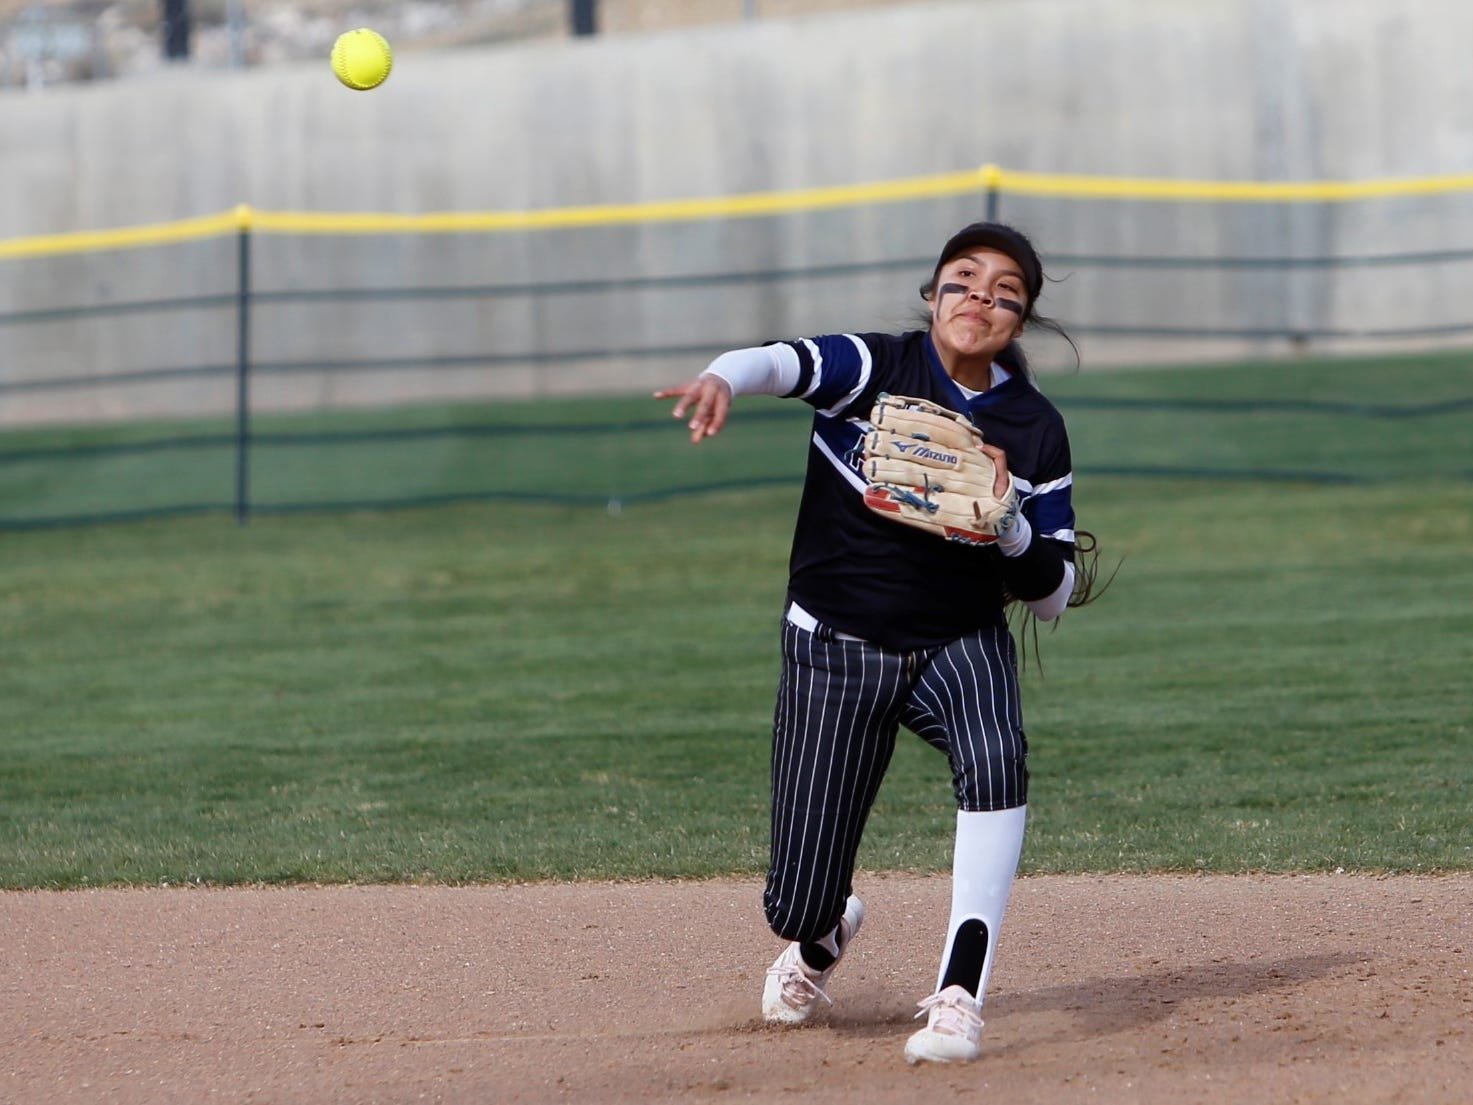 Piedra Vista's Lanae Billy makes a tough throw to first base for an out against Farmington during Friday's District 2-5A game at Farmington Sports Complex.